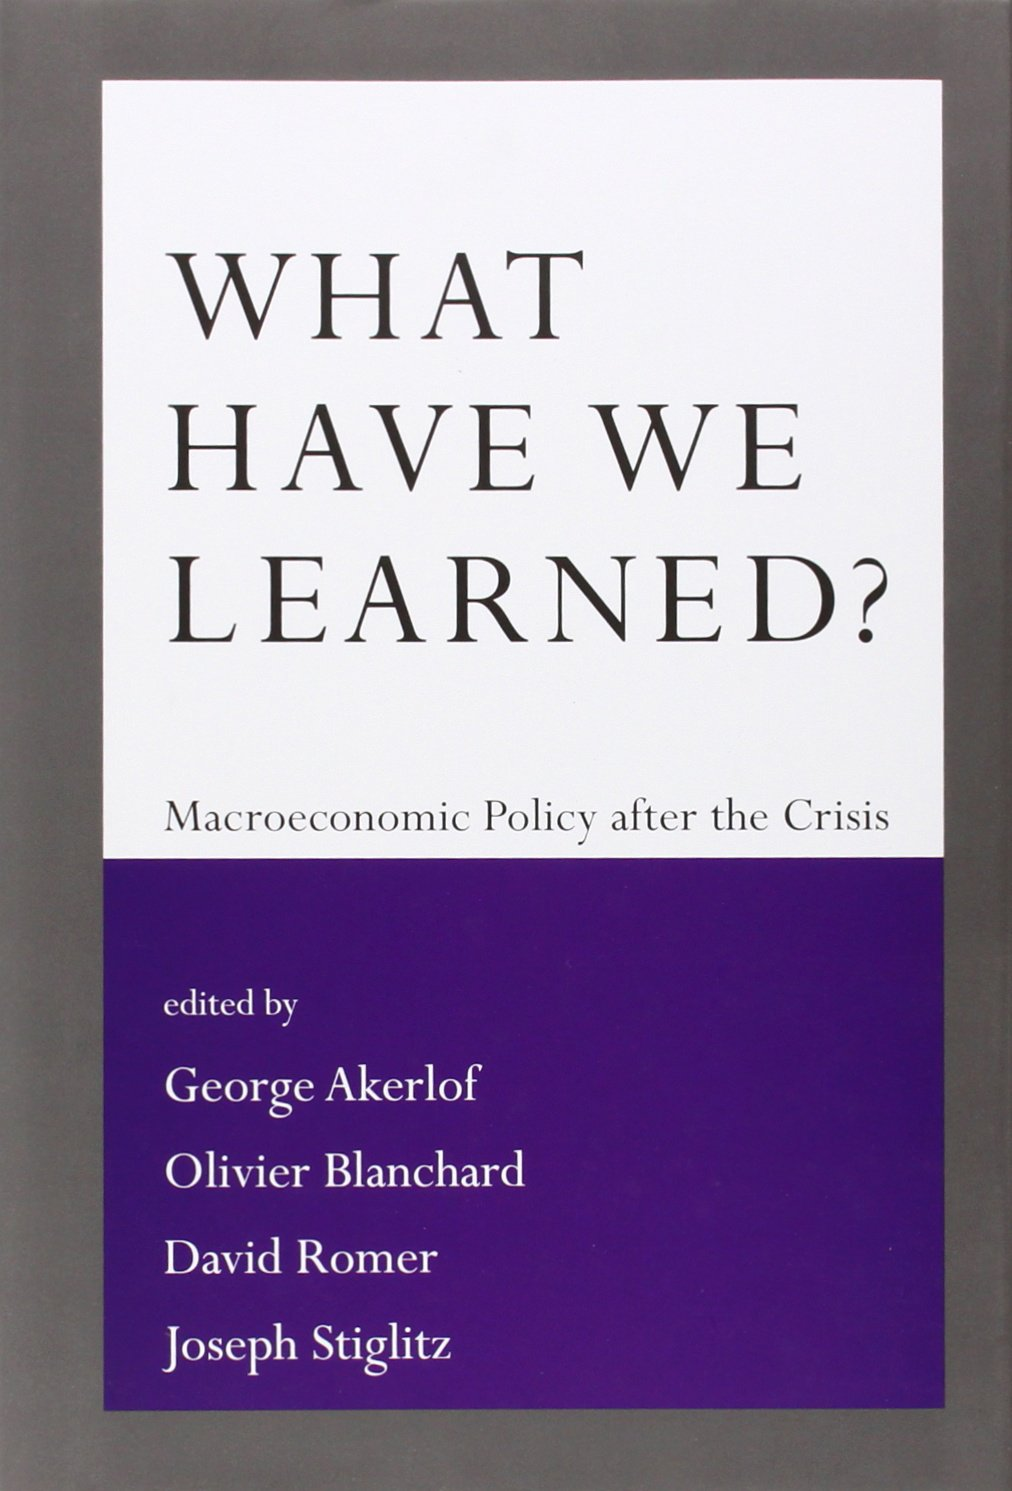 What Have We Learned?: Macroeconomic Policy after the Crisis (The MIT Press)